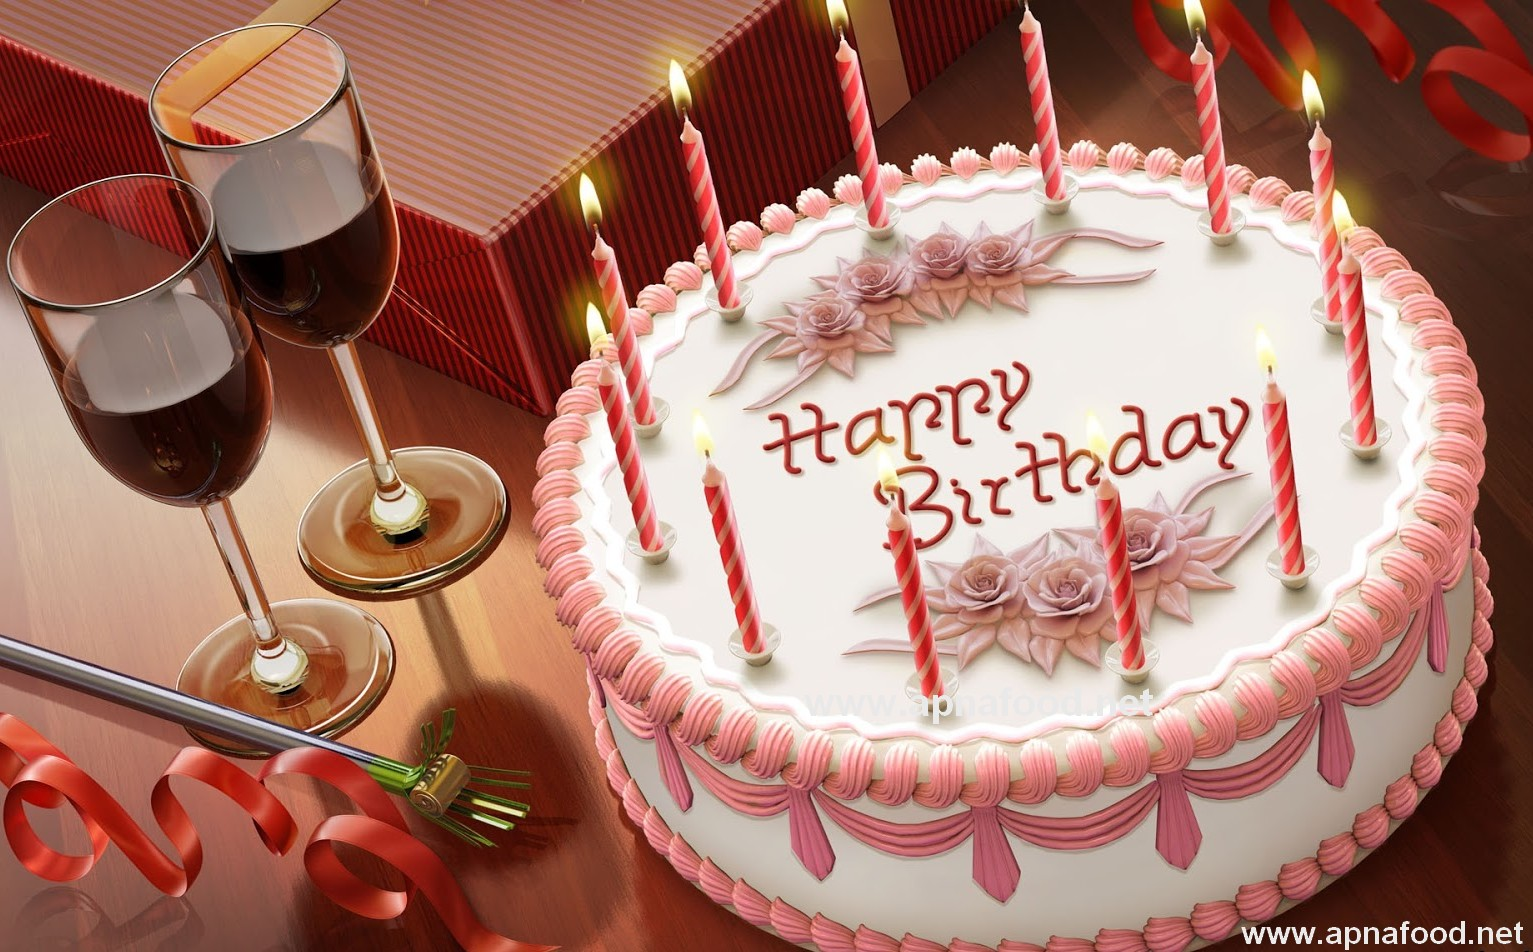 Happy Birthday Sms Birthday Messages And Birthday Wishes Apna Food